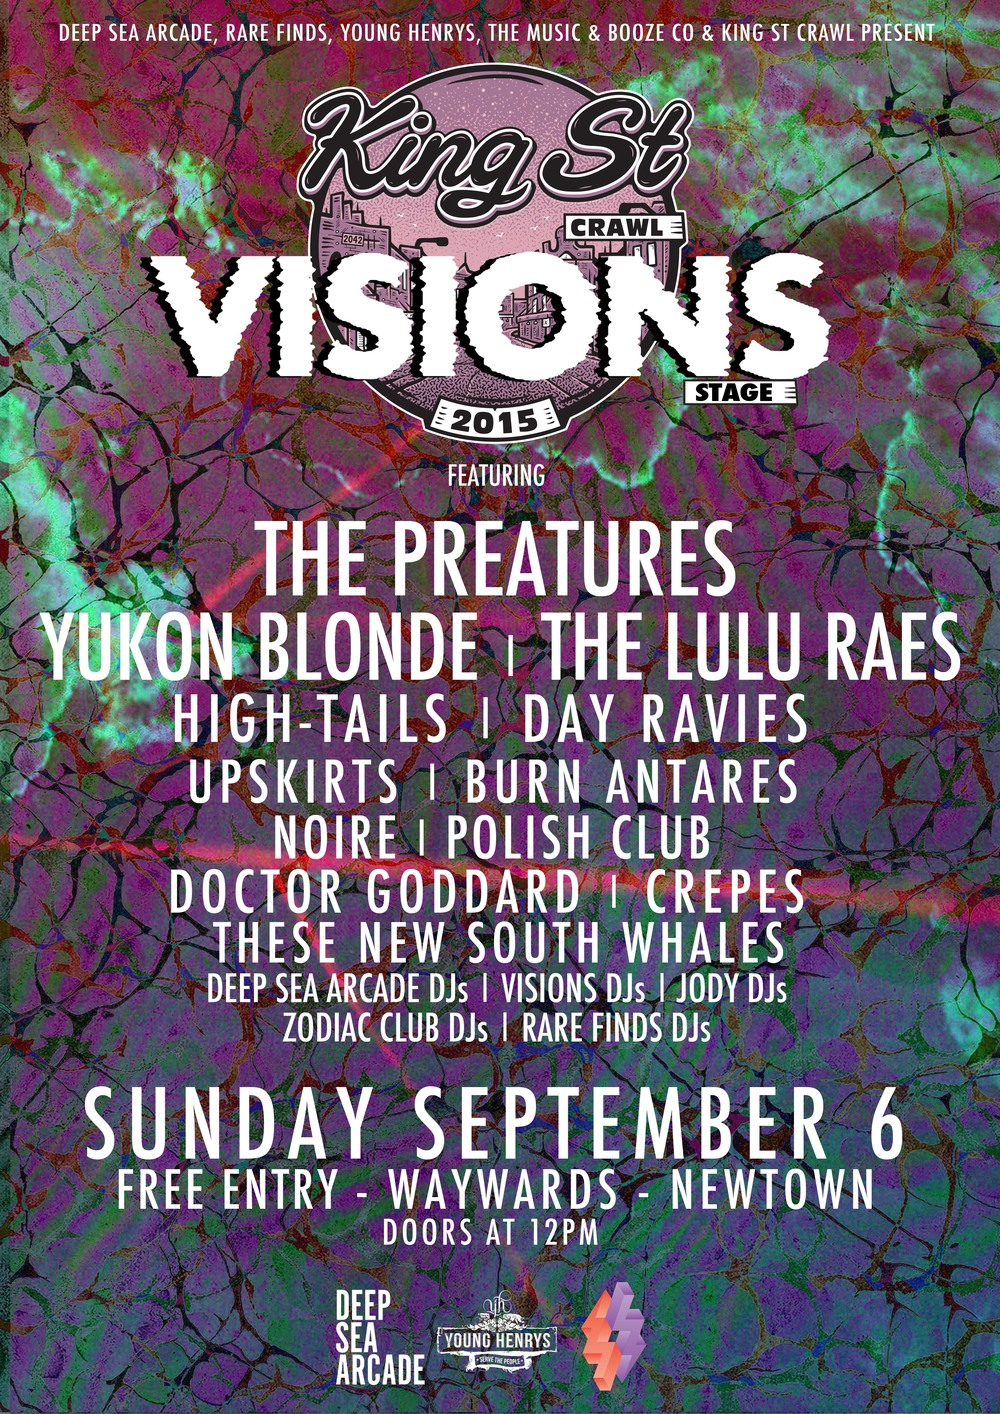 VISIONS KING ST CRAWL full poster.jpg